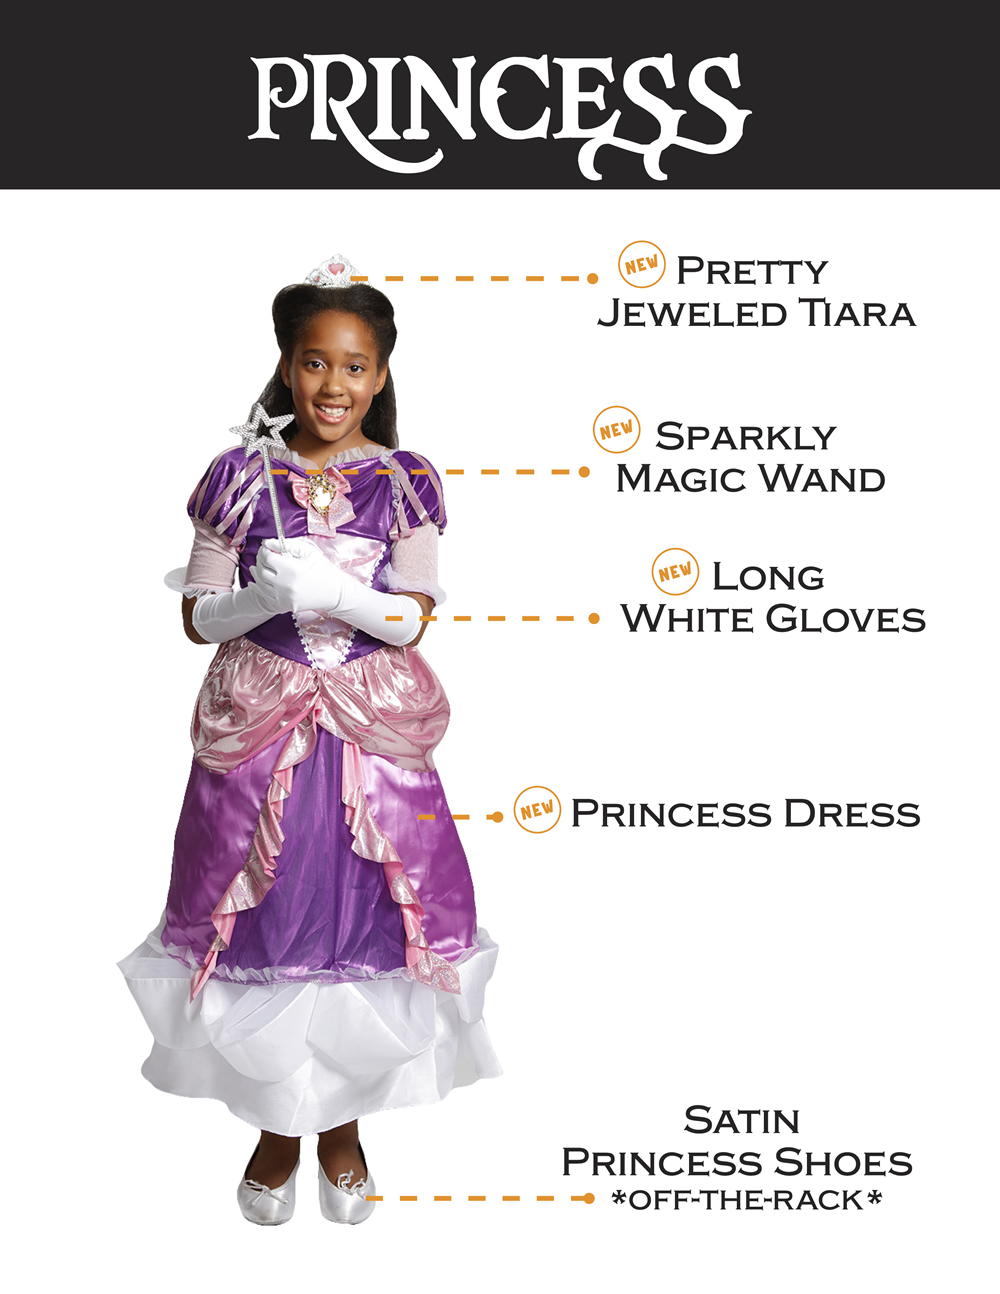 Princess-pretty jeweled tiara, sparkly magic wand, long white gloves. lacy princess dress